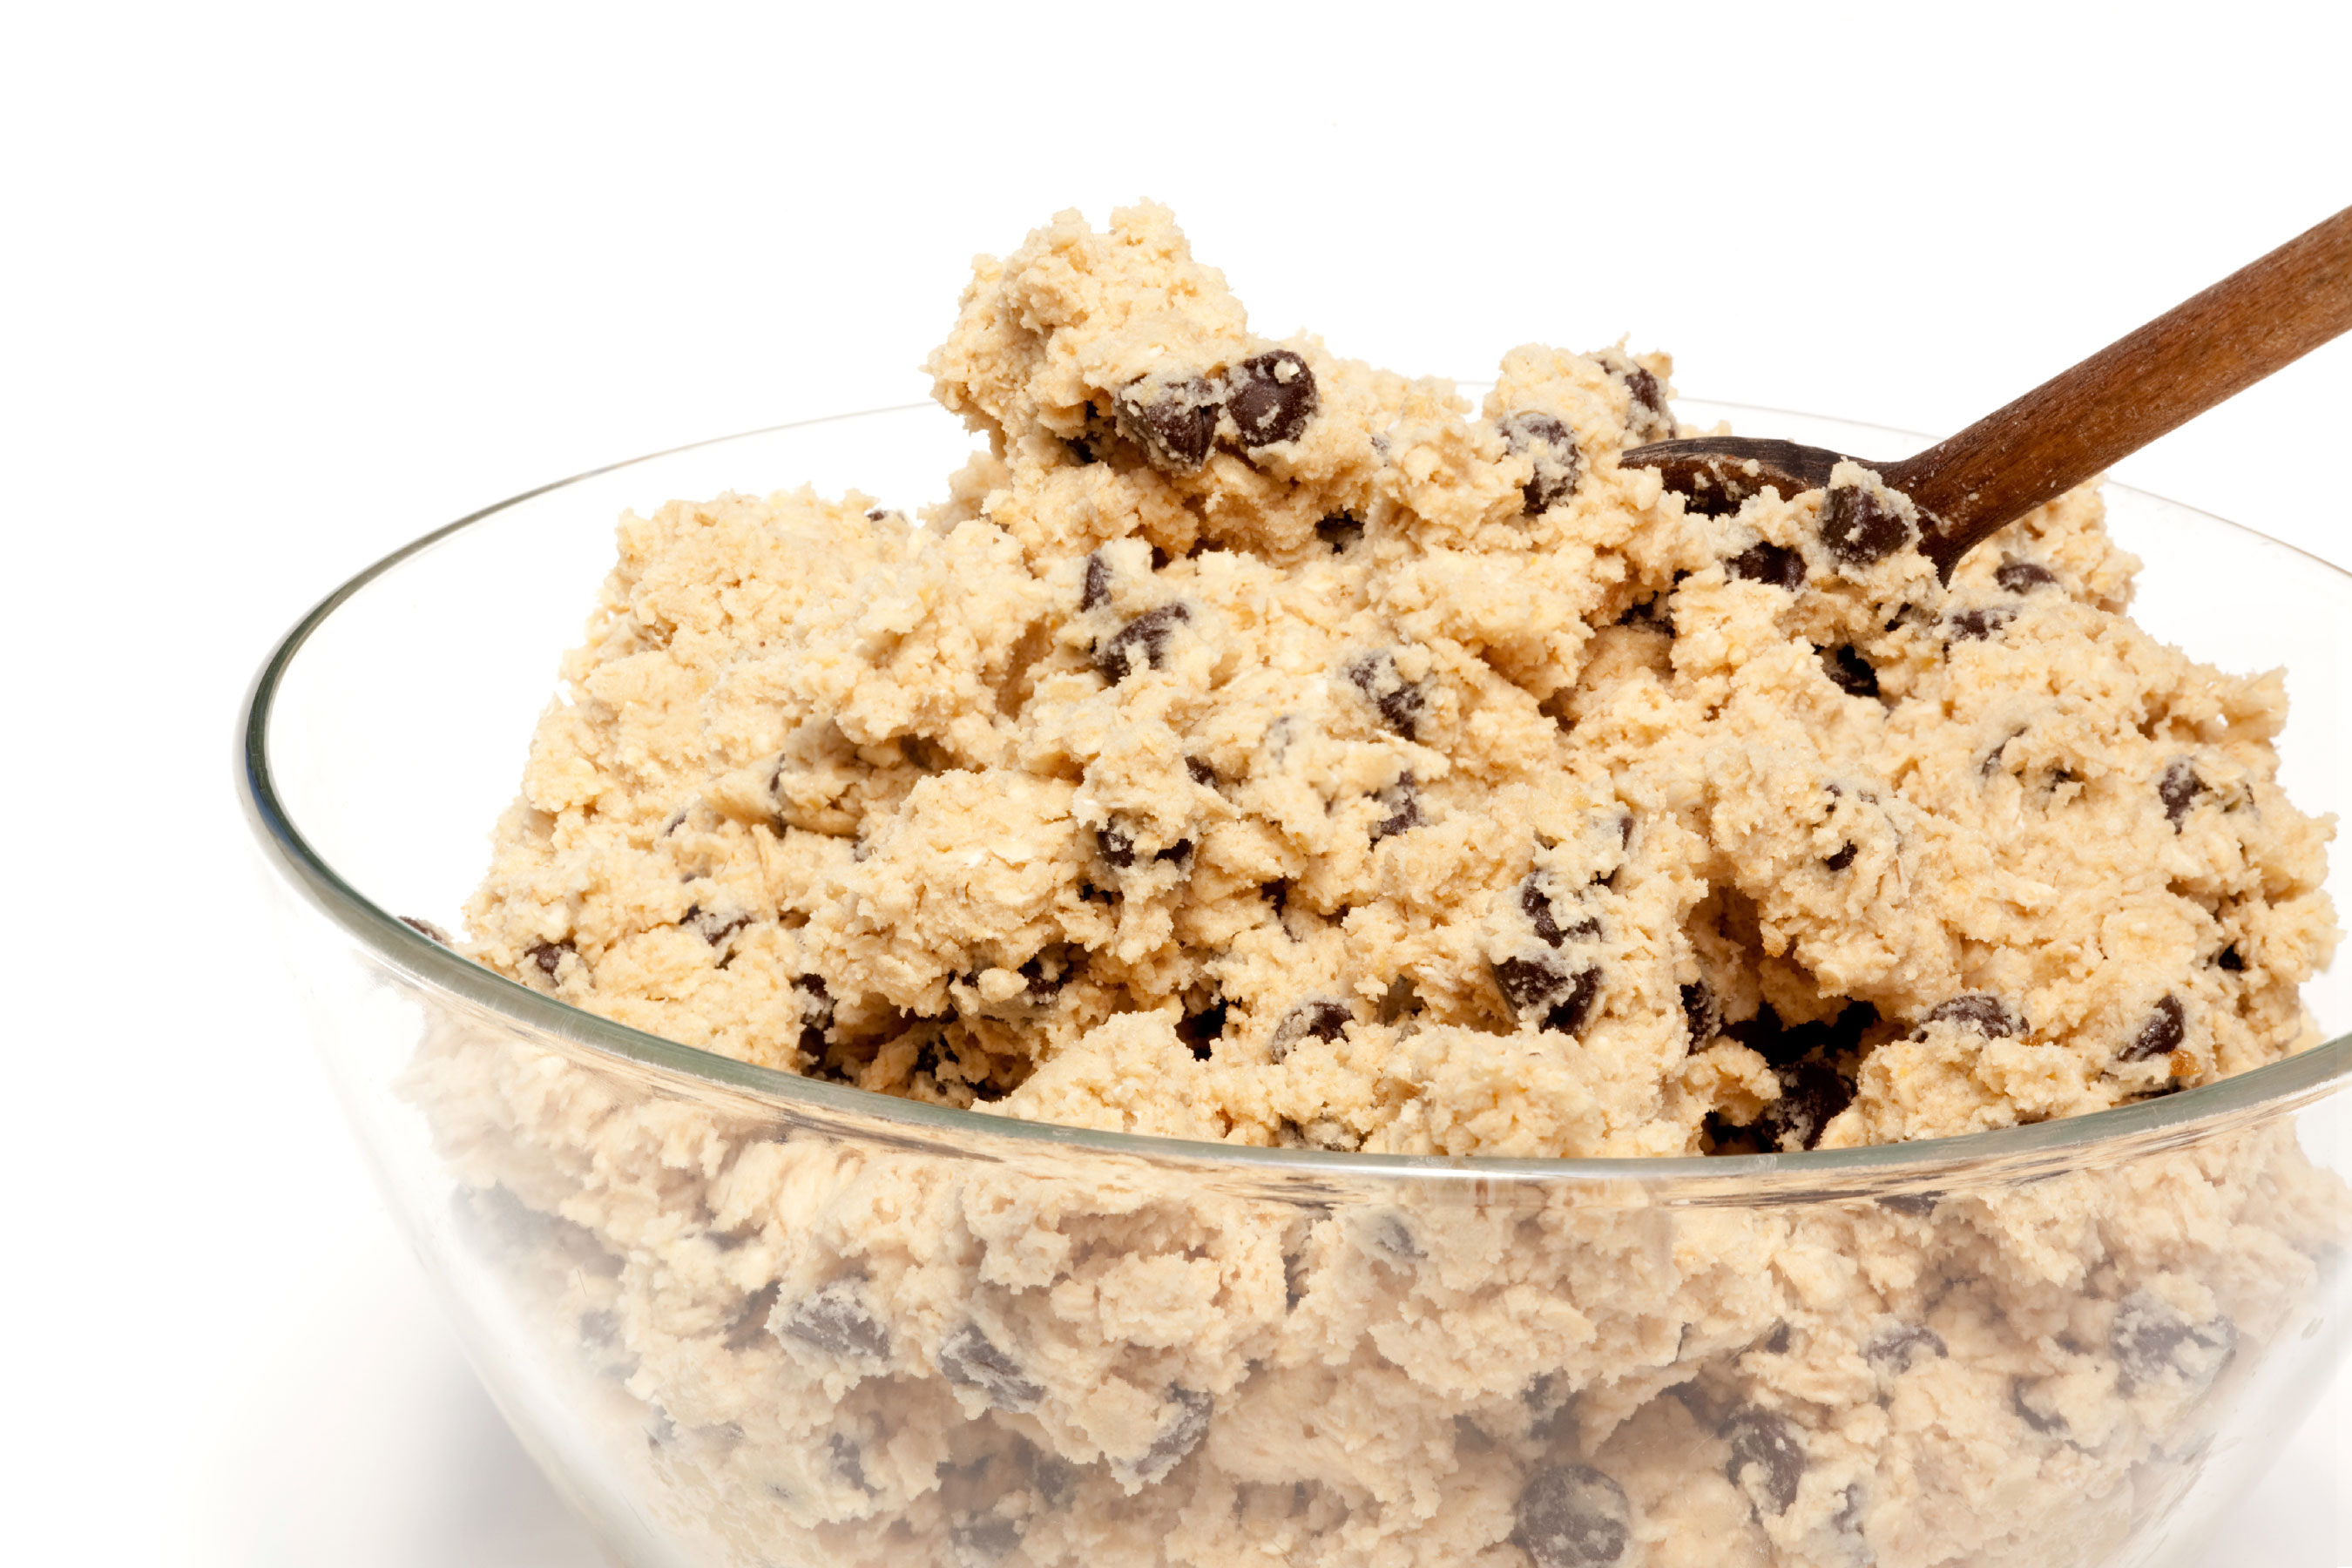 Chocolate Oatmeal Cookie Frozen Yogurt Flavor with Chocolate base powder mix